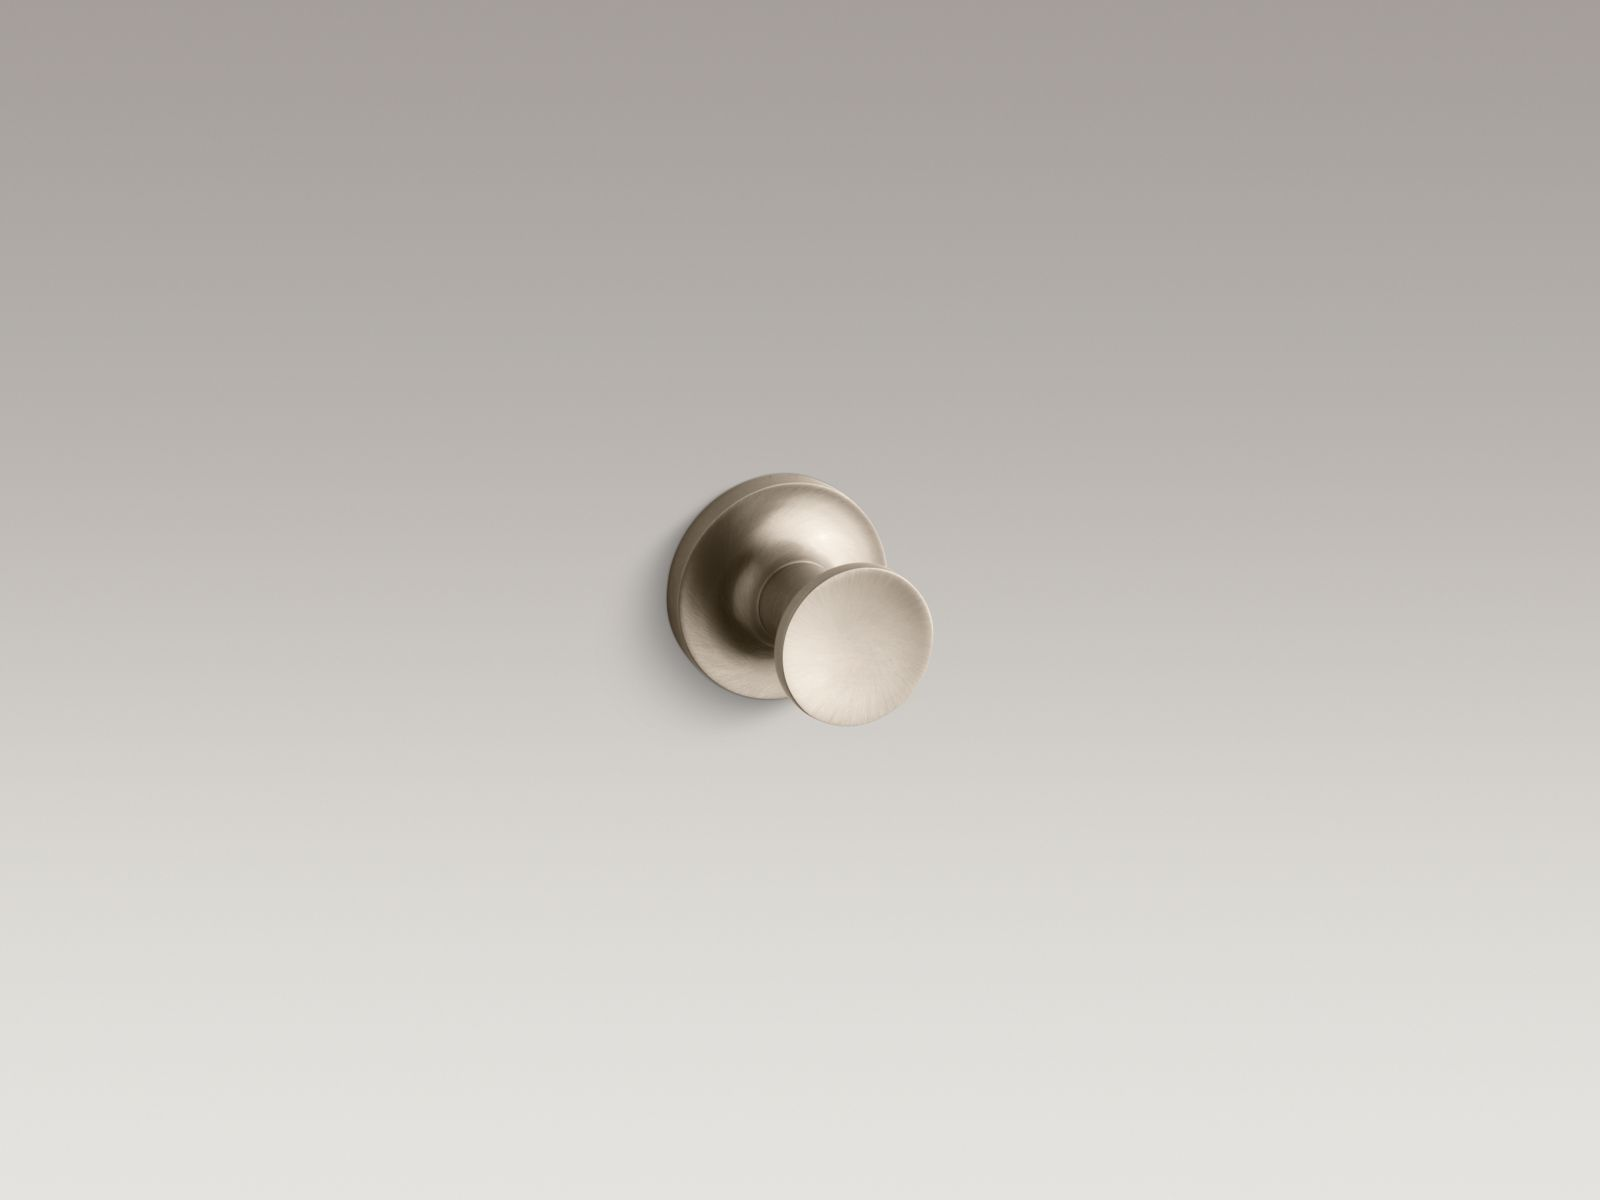 Kohler K-14443-BV Purist Robe Hook Vibrant Brushed Bronze